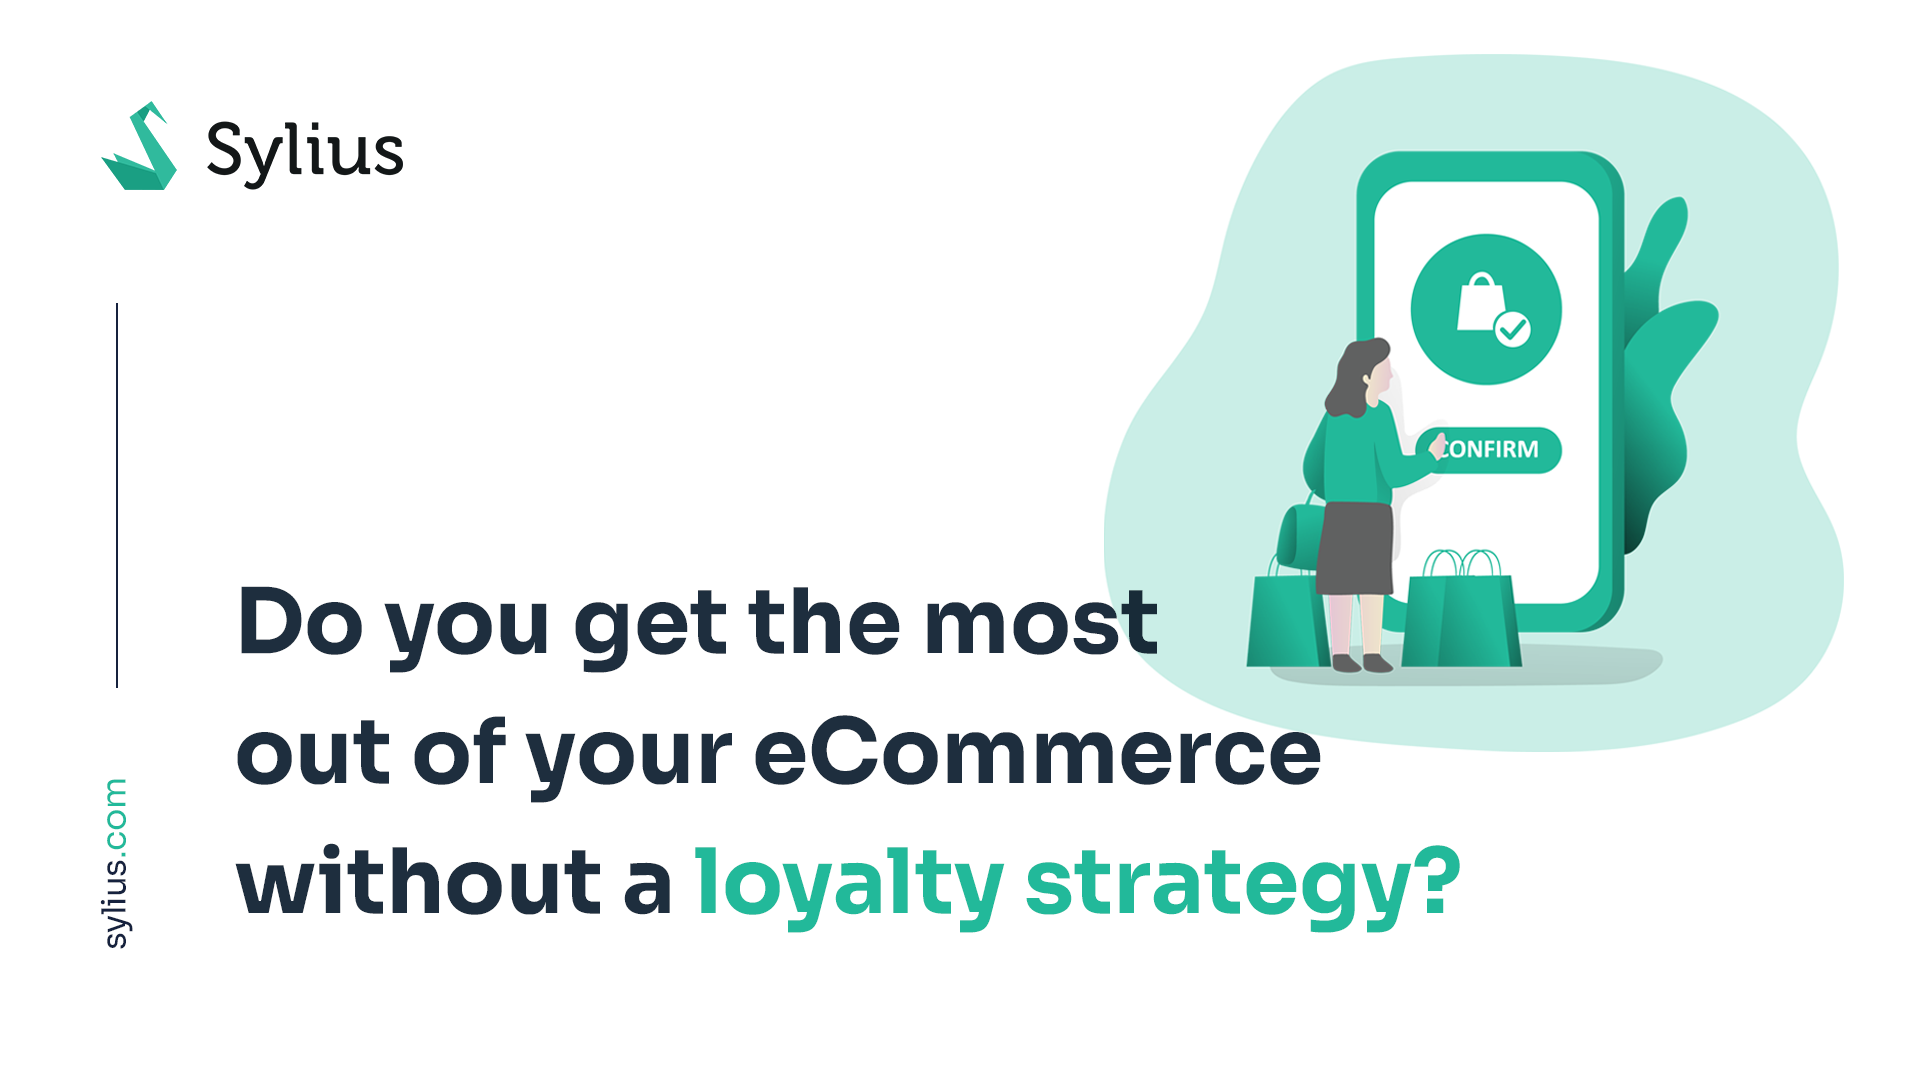 Do you get the most out of your eCommerce without a loyalty strategy?